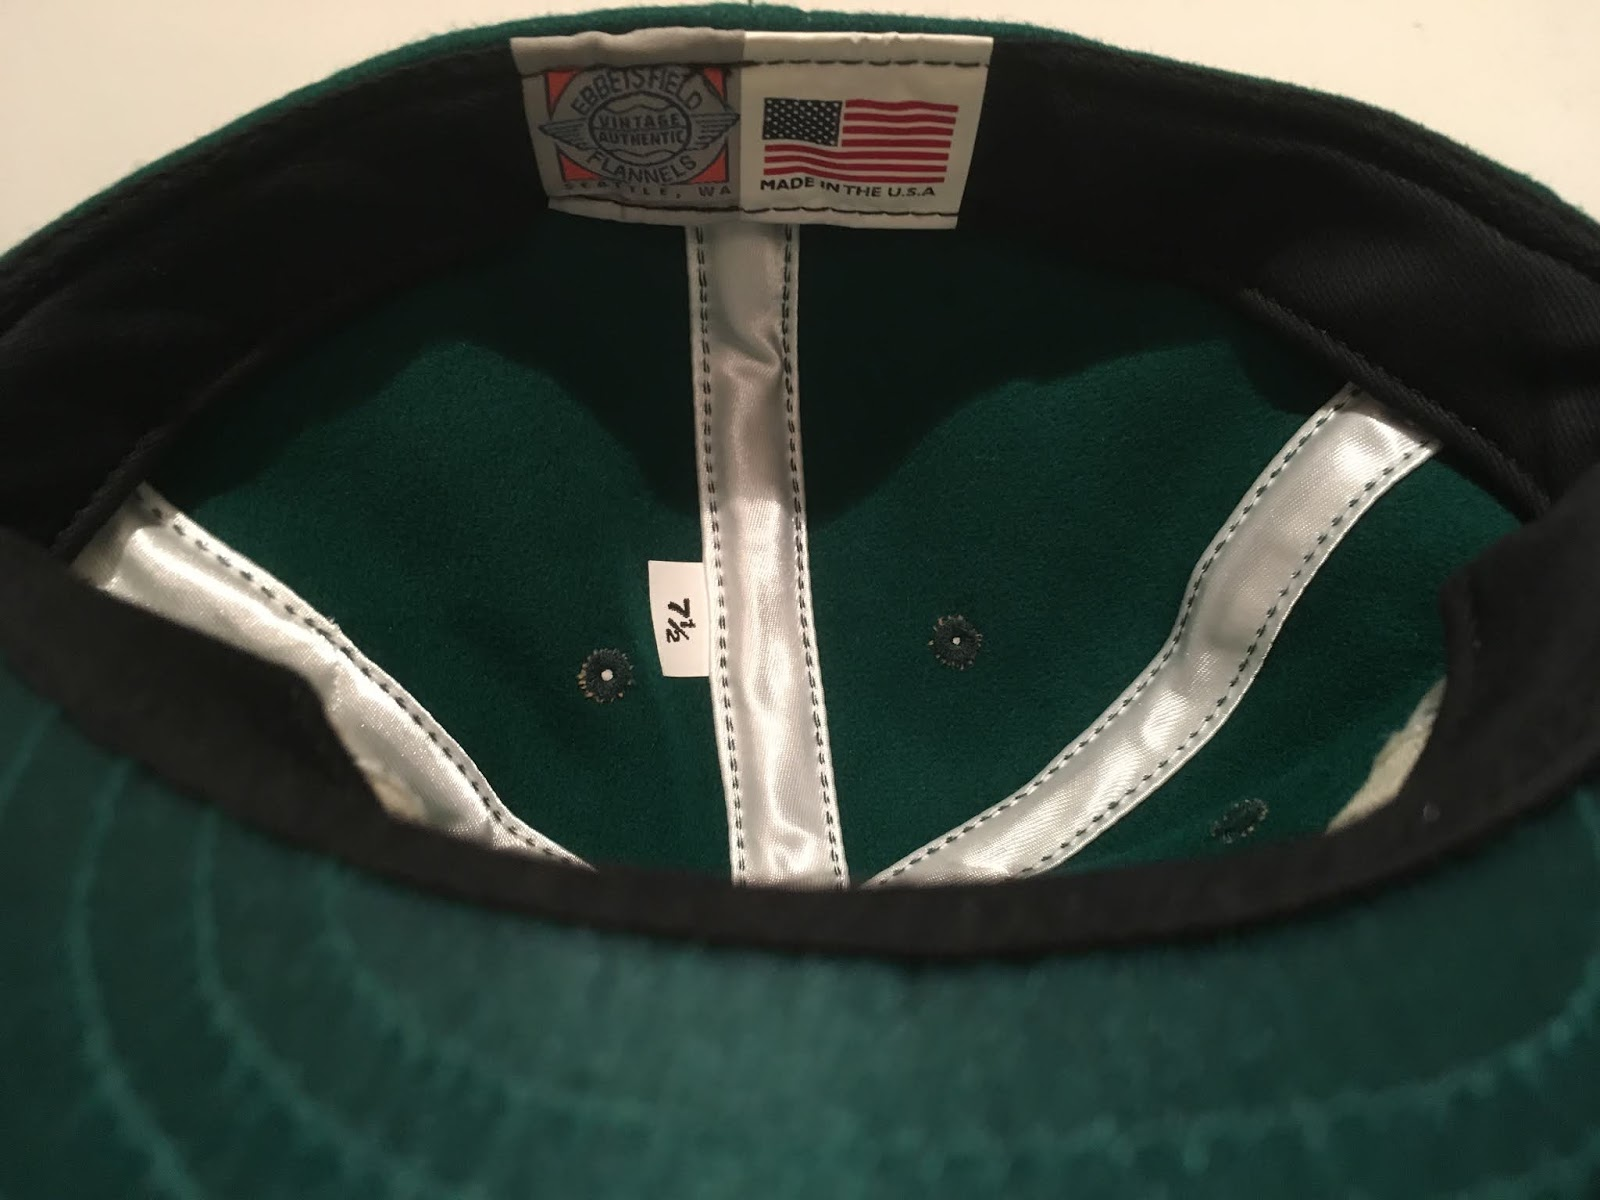 2f9ff4e1a3c The great thing about Ebbets Field Flannels is their caps are always  top-notch so there s no need to go into any sort of detail about that.